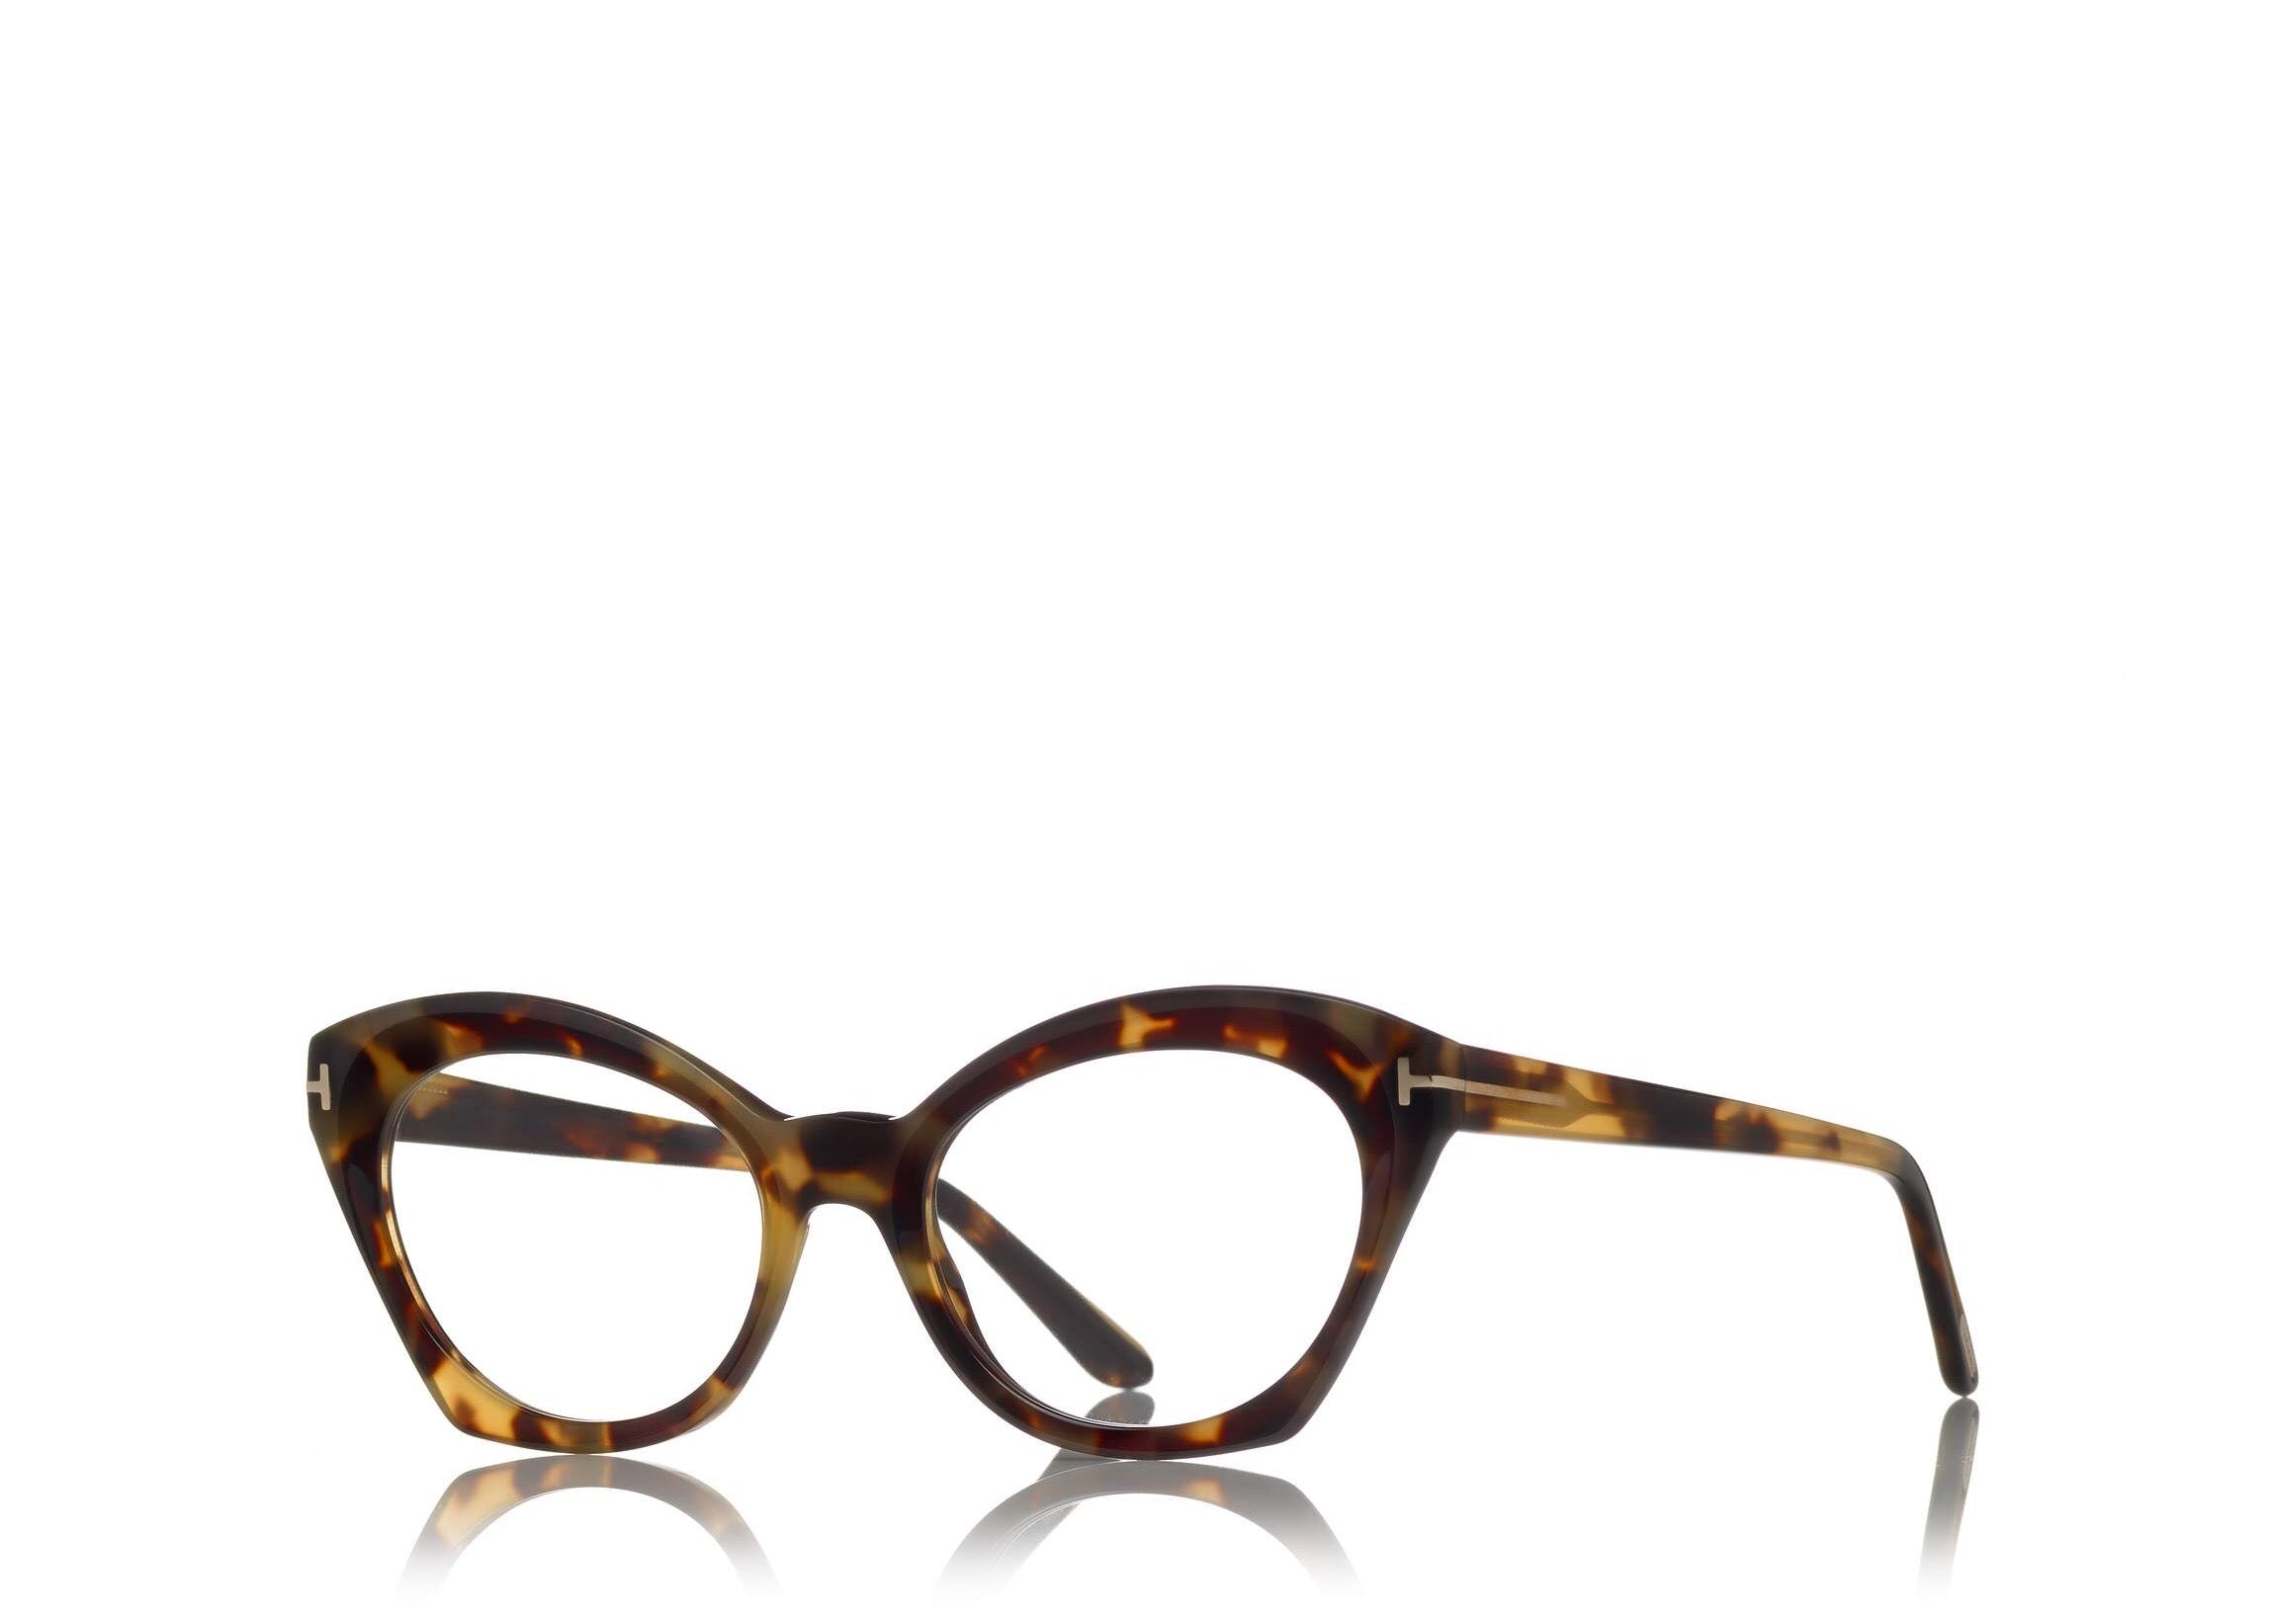 9b6ad8eee6 6468985965 TOM FORD FT 5456 WOMEN S CAT-EYE FRAME OPTICAL GLASSES ...